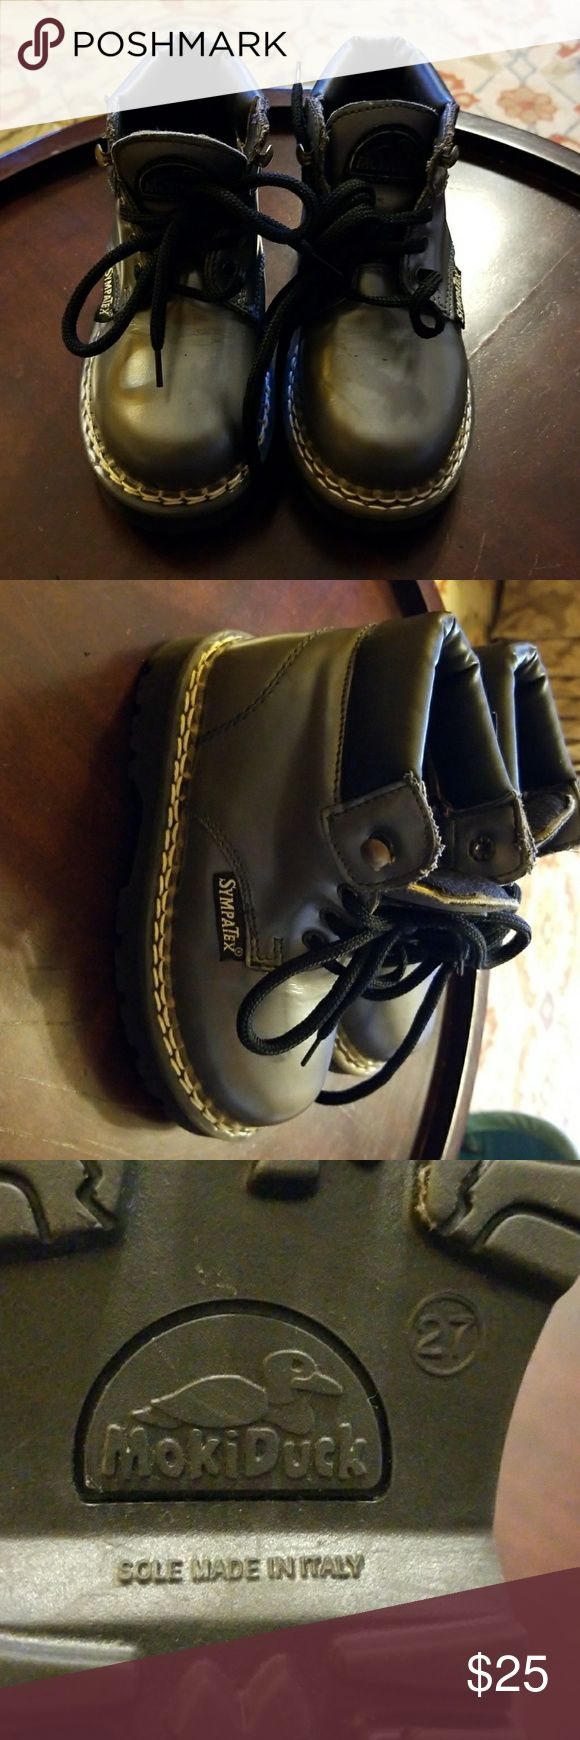 SympaTex Infant boots SympaTex mokiduck Infant boots. Gently used. Size 27.Made in Italy. Sympatex Shoes Boots